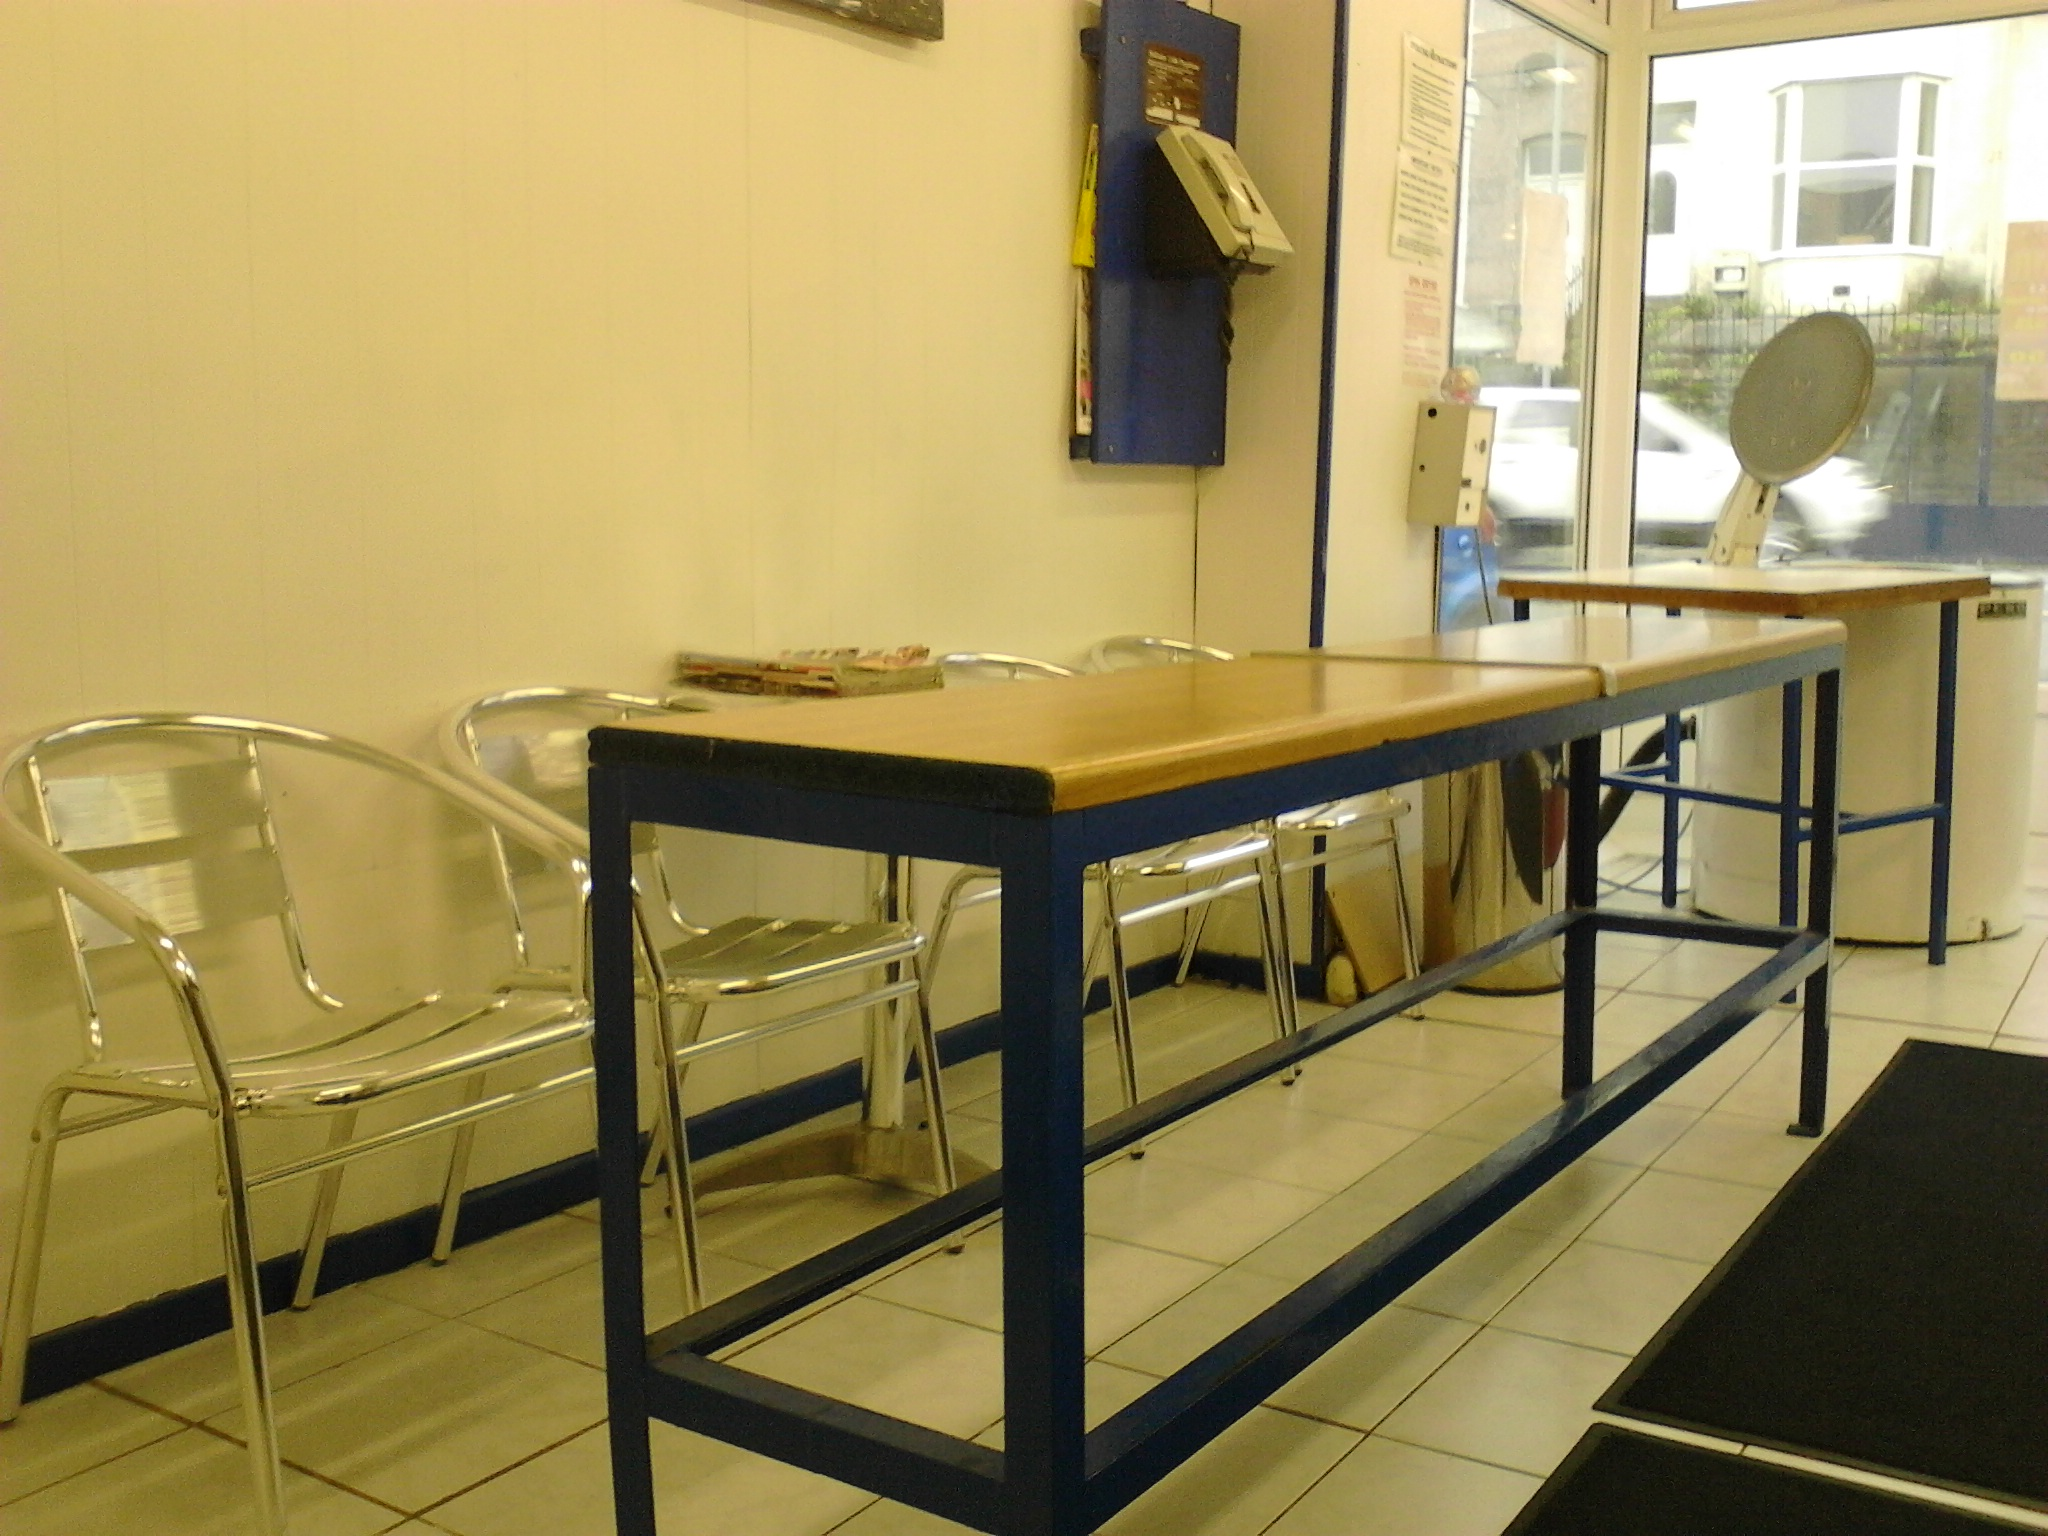 Laundrette folding table.jpg